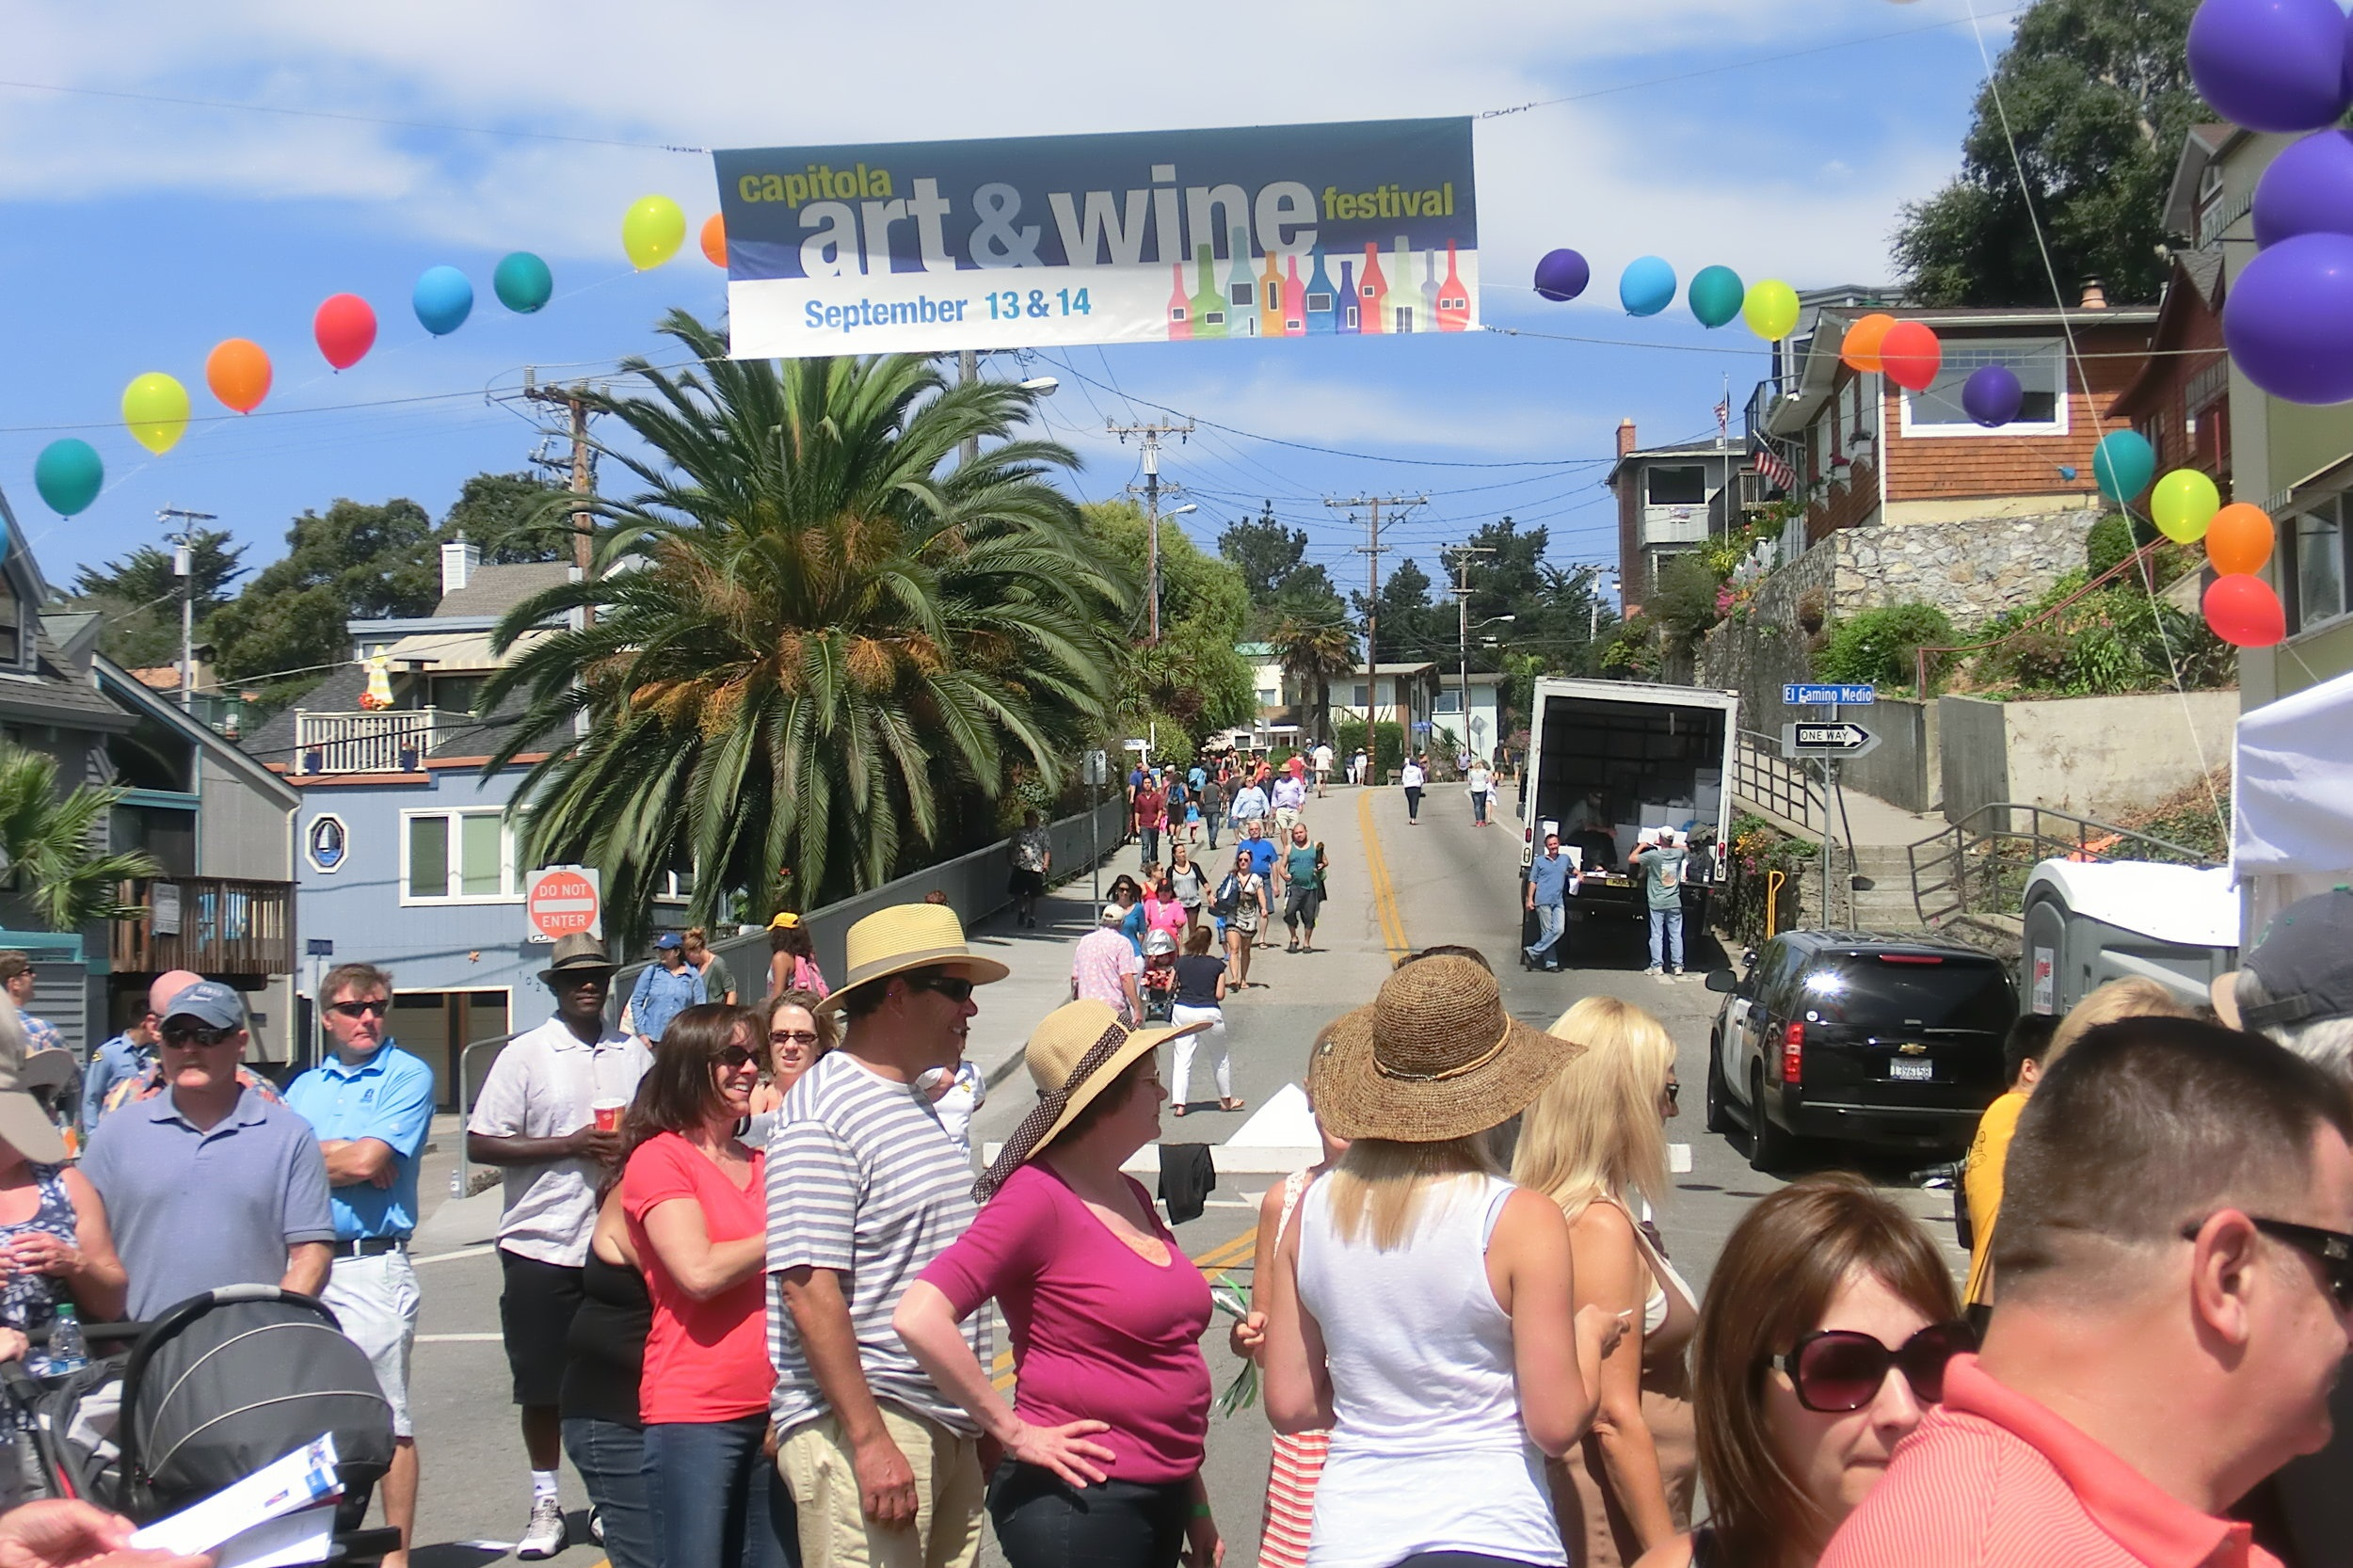 art & wine festival - The Capitola Art and Wine Festival is one of the signature annual events in Capitola, of which there are many. The Art and Wine Festival has been a regular event in Capitola Village for more than 35 years, featuring art, wine, food and music, all in the cozy confines of Capitola Village.